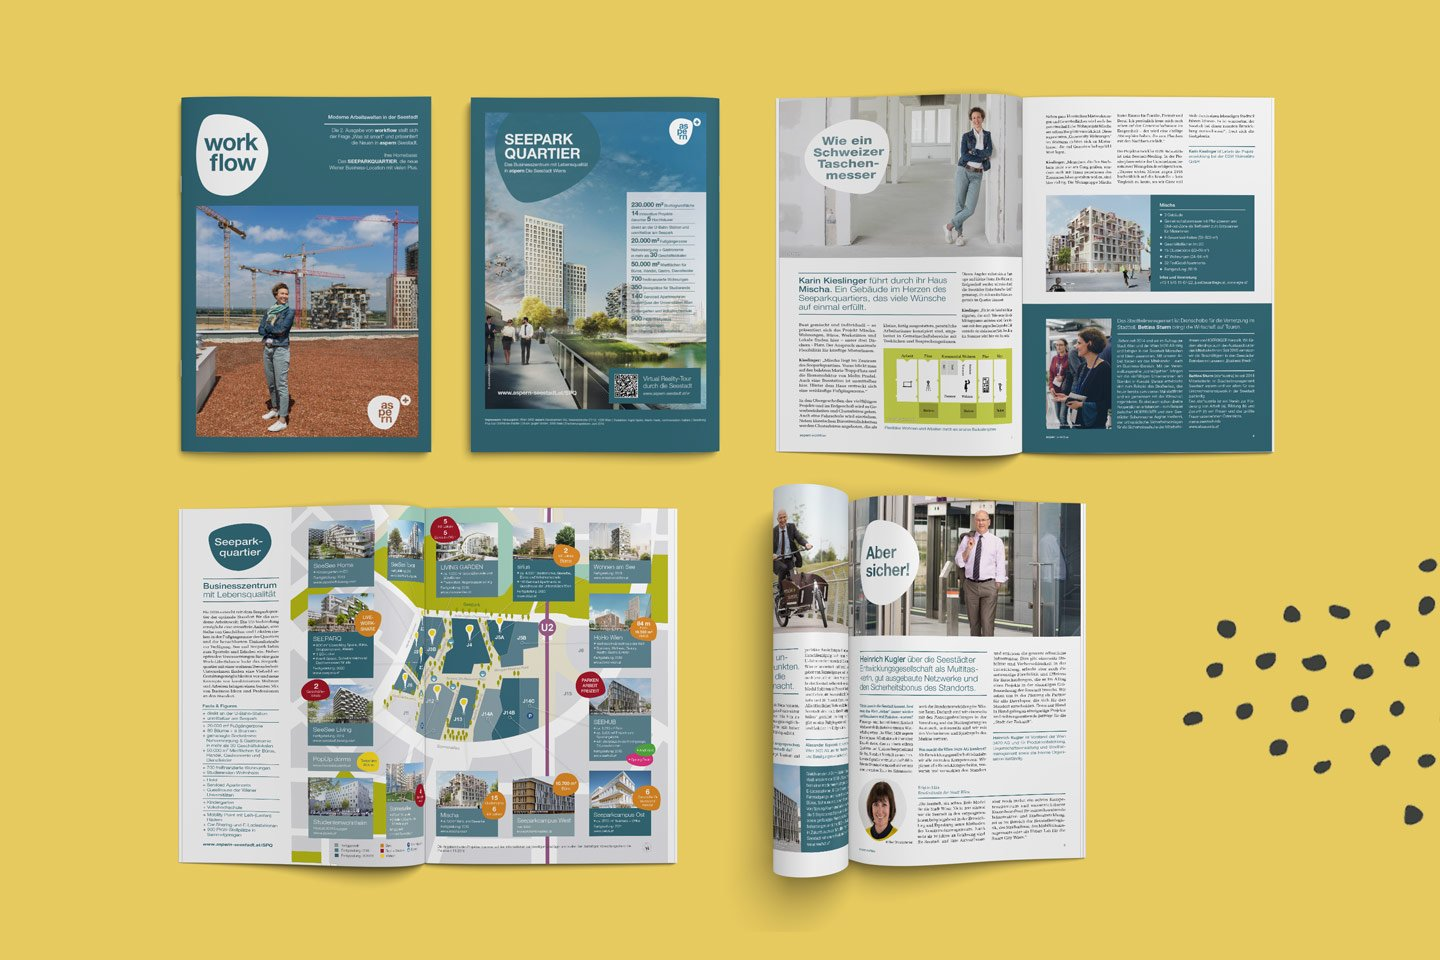 aspern Seestadt | Magazin Workflow Collage